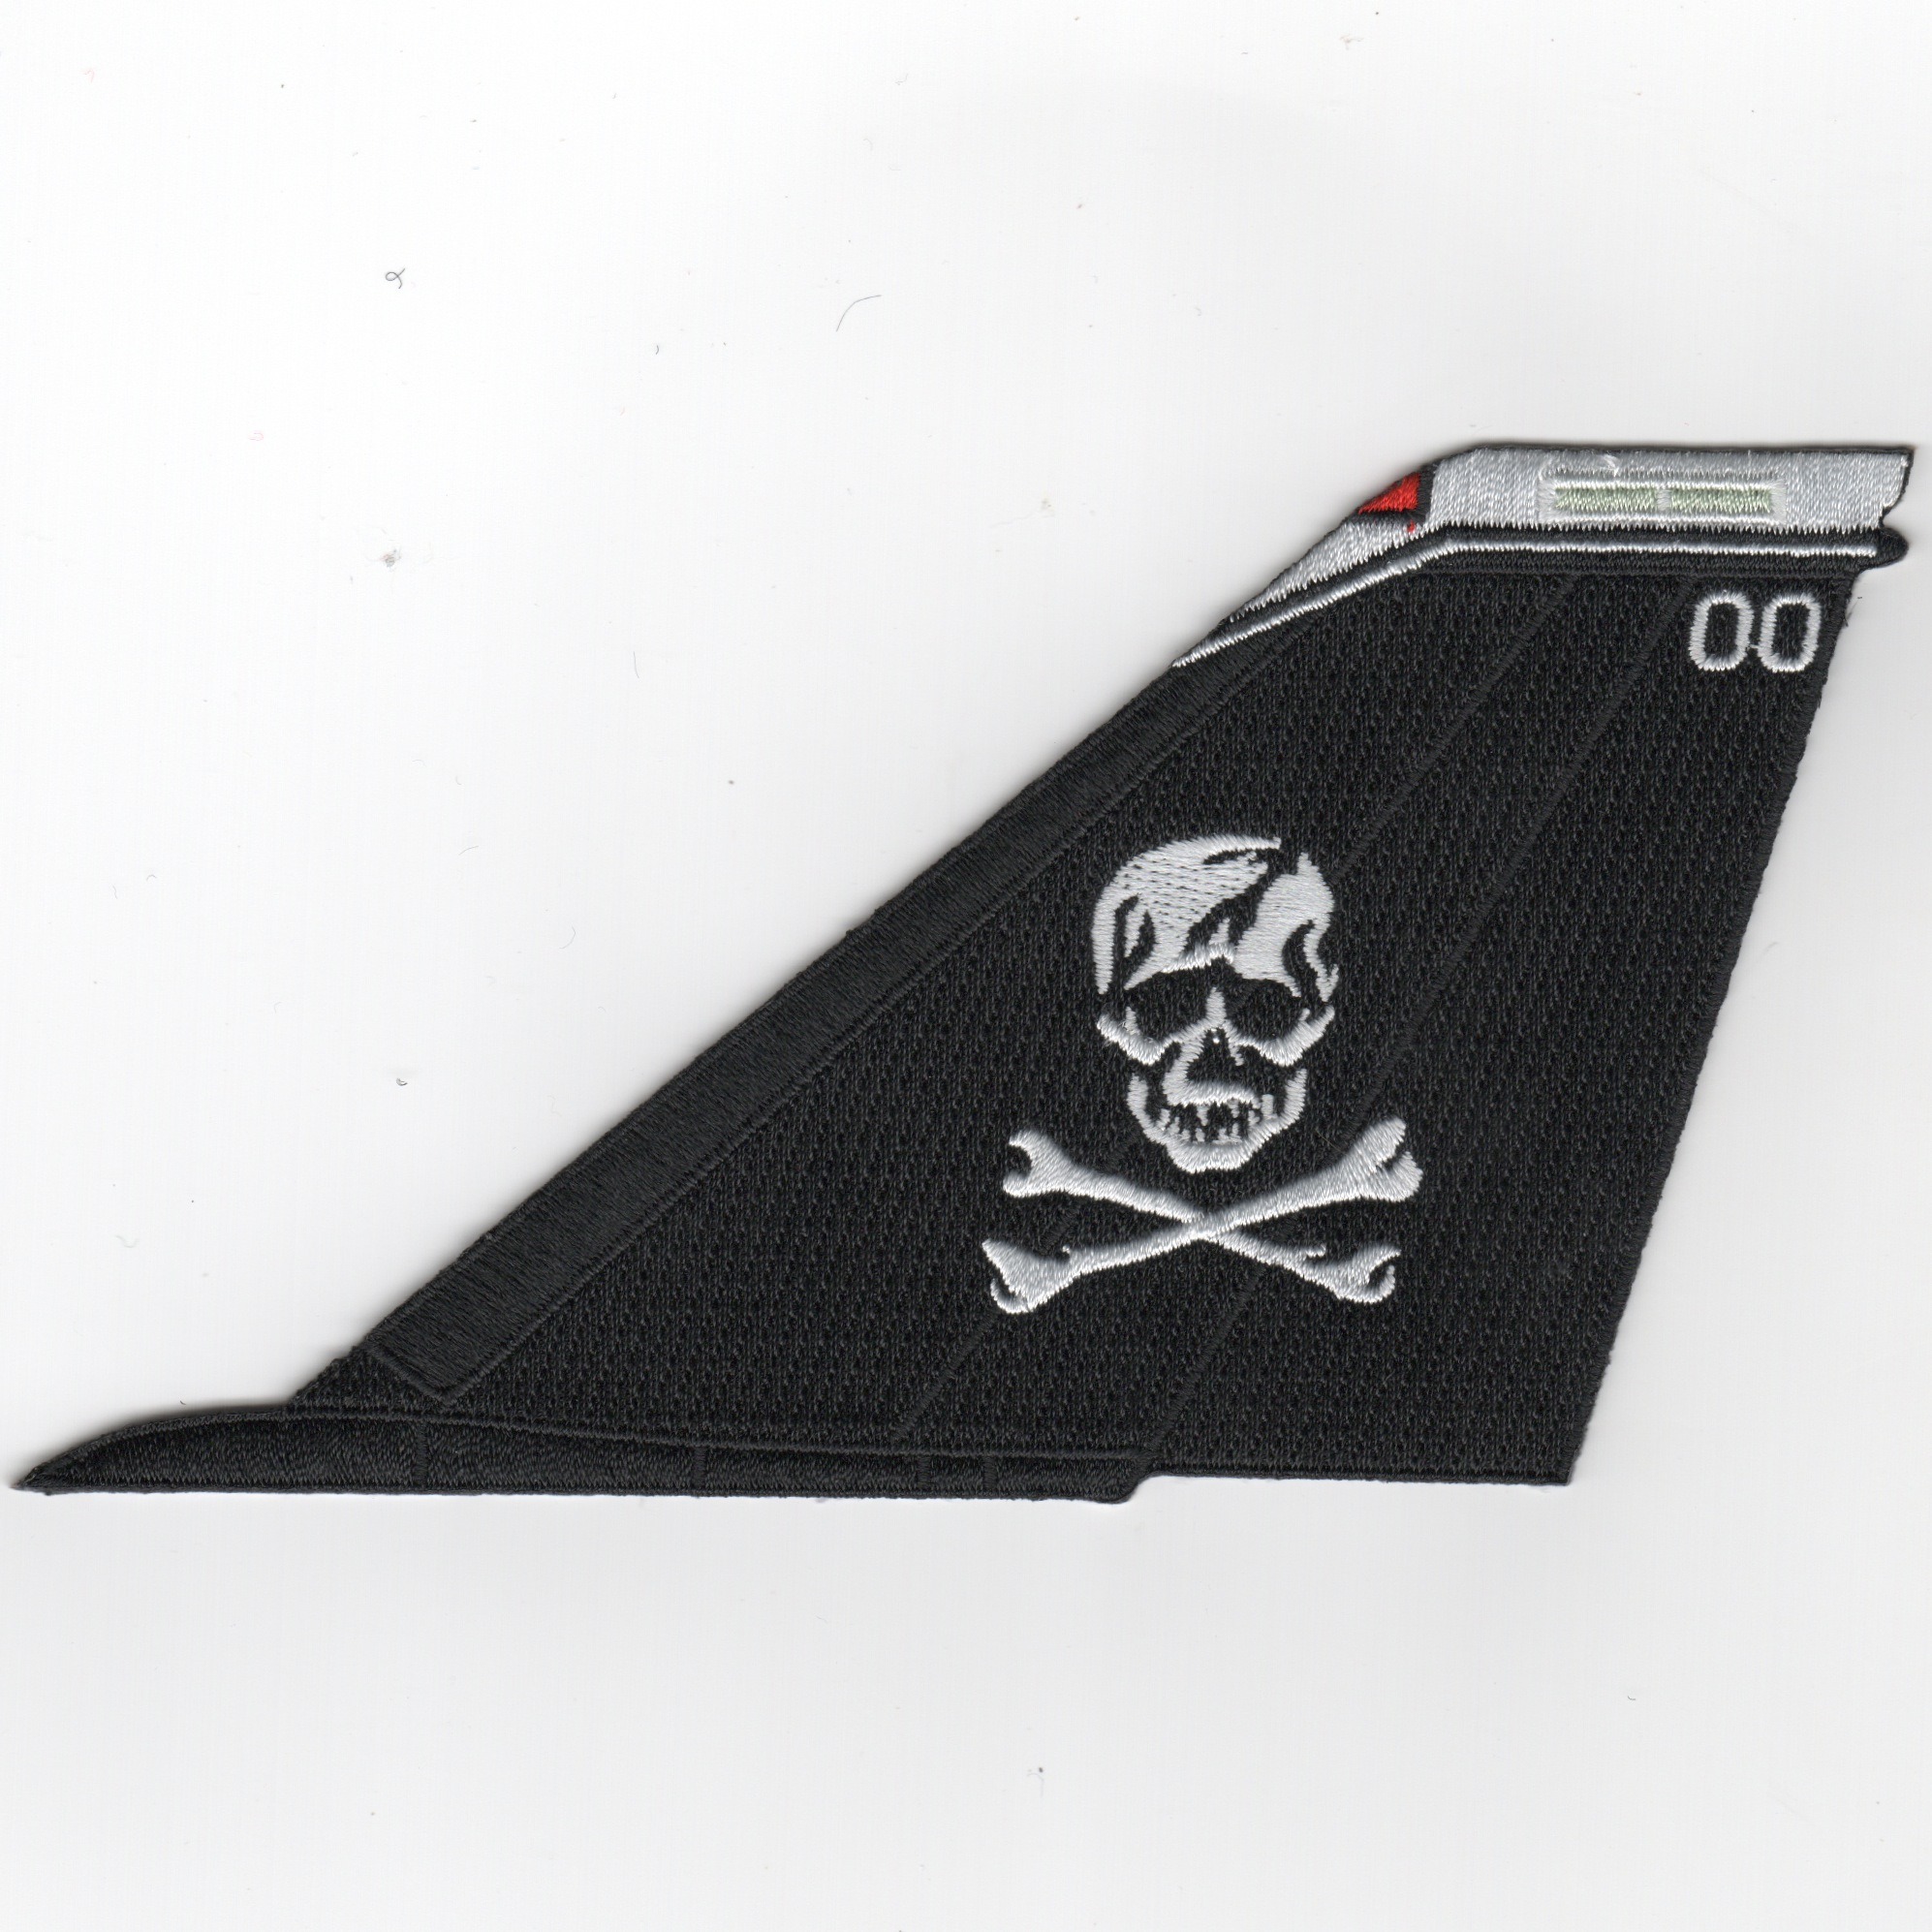 VF-103 F-14 Tailfin (Black/White Skull/White Tip/No Text)